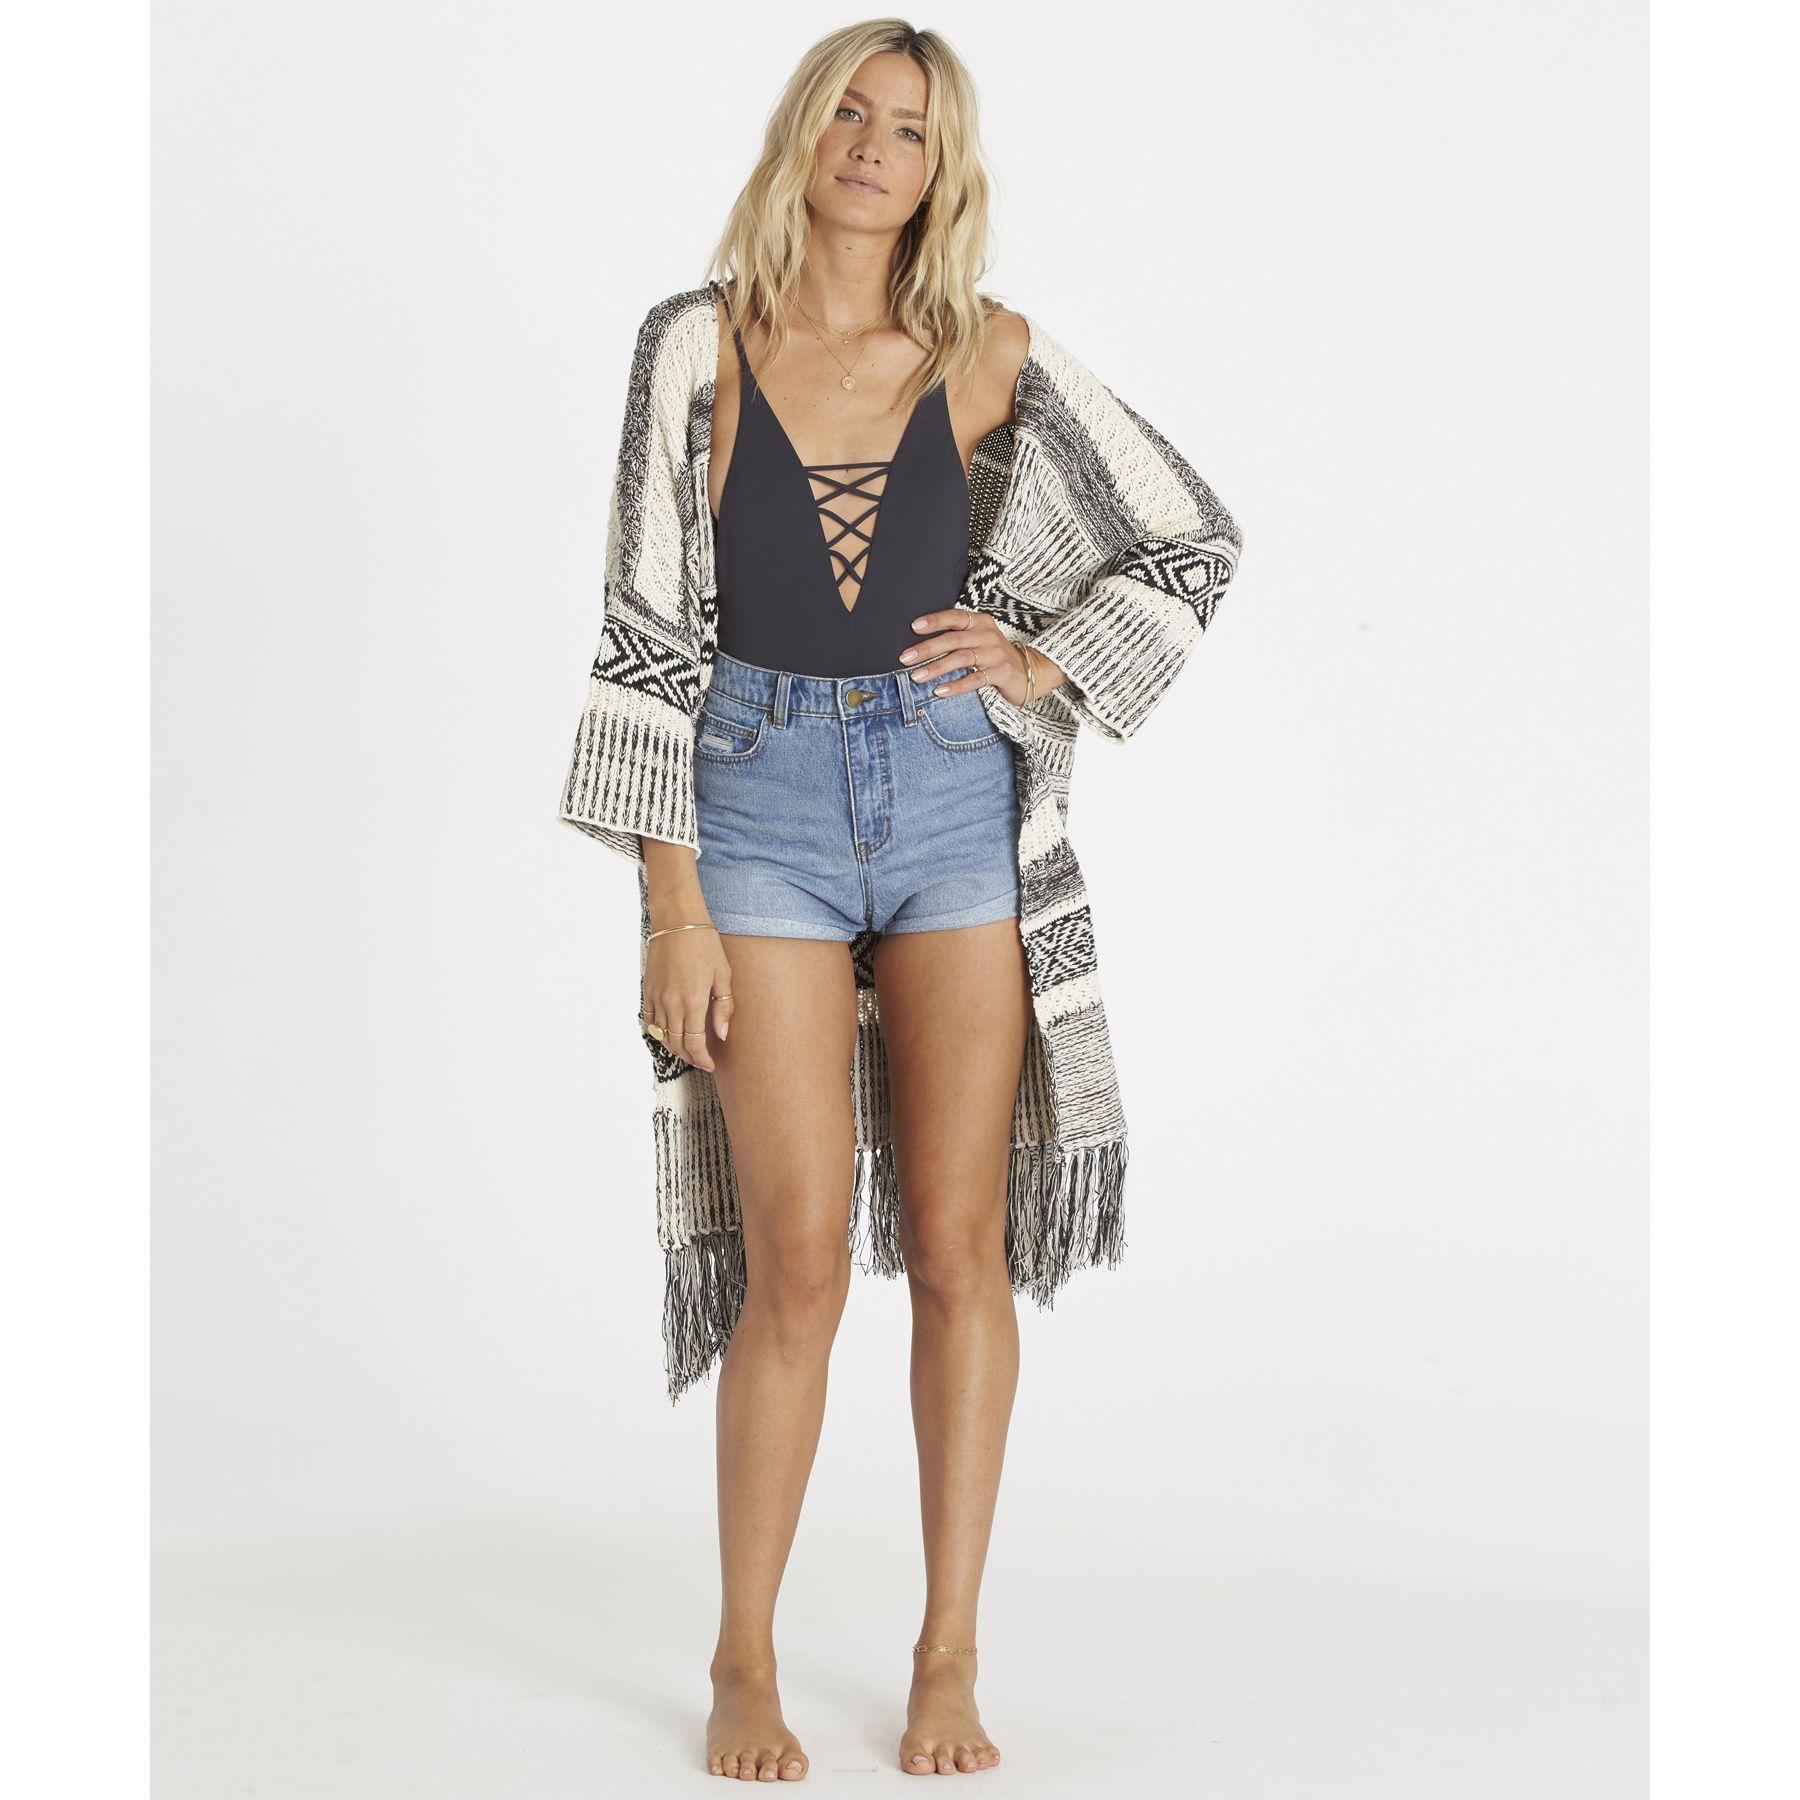 An outdoorready cardigan to suit your wandering soul